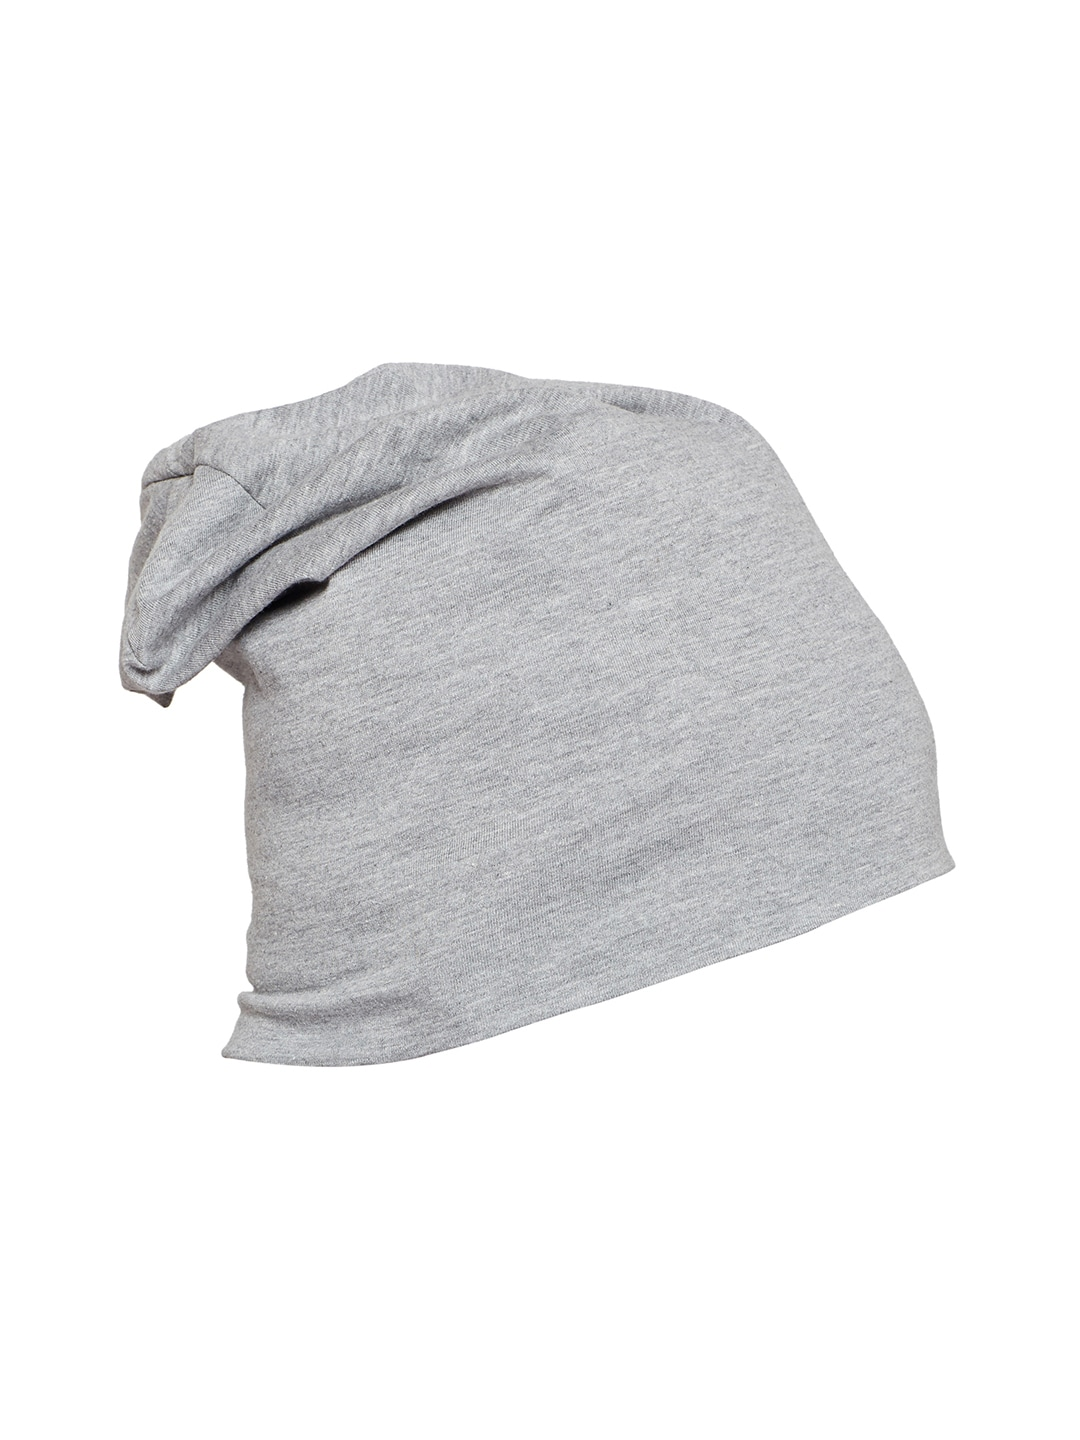 66ccade9ca3 Beanie Caps - Buy Beanie Caps online in India